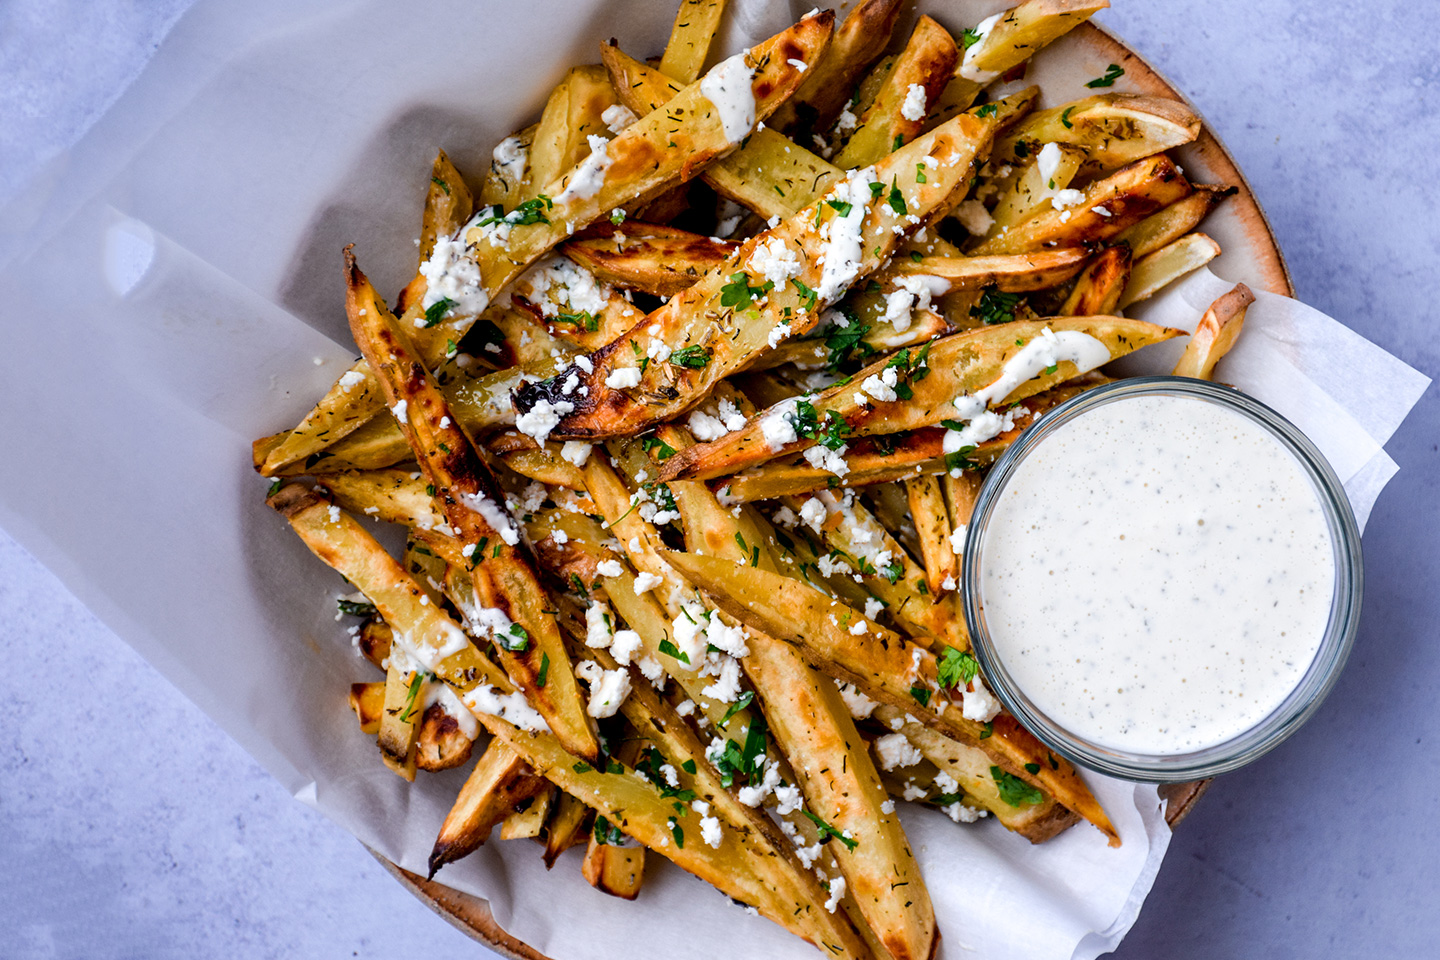 """<p style=""""text-align: right;""""><a href=""""/loaded-greek-fries"""">Loaded Greek Fries</a></p> <p style=""""text-align: right;"""">Classic, Plant-based, Paleo, &amp; Low Carb</p>"""